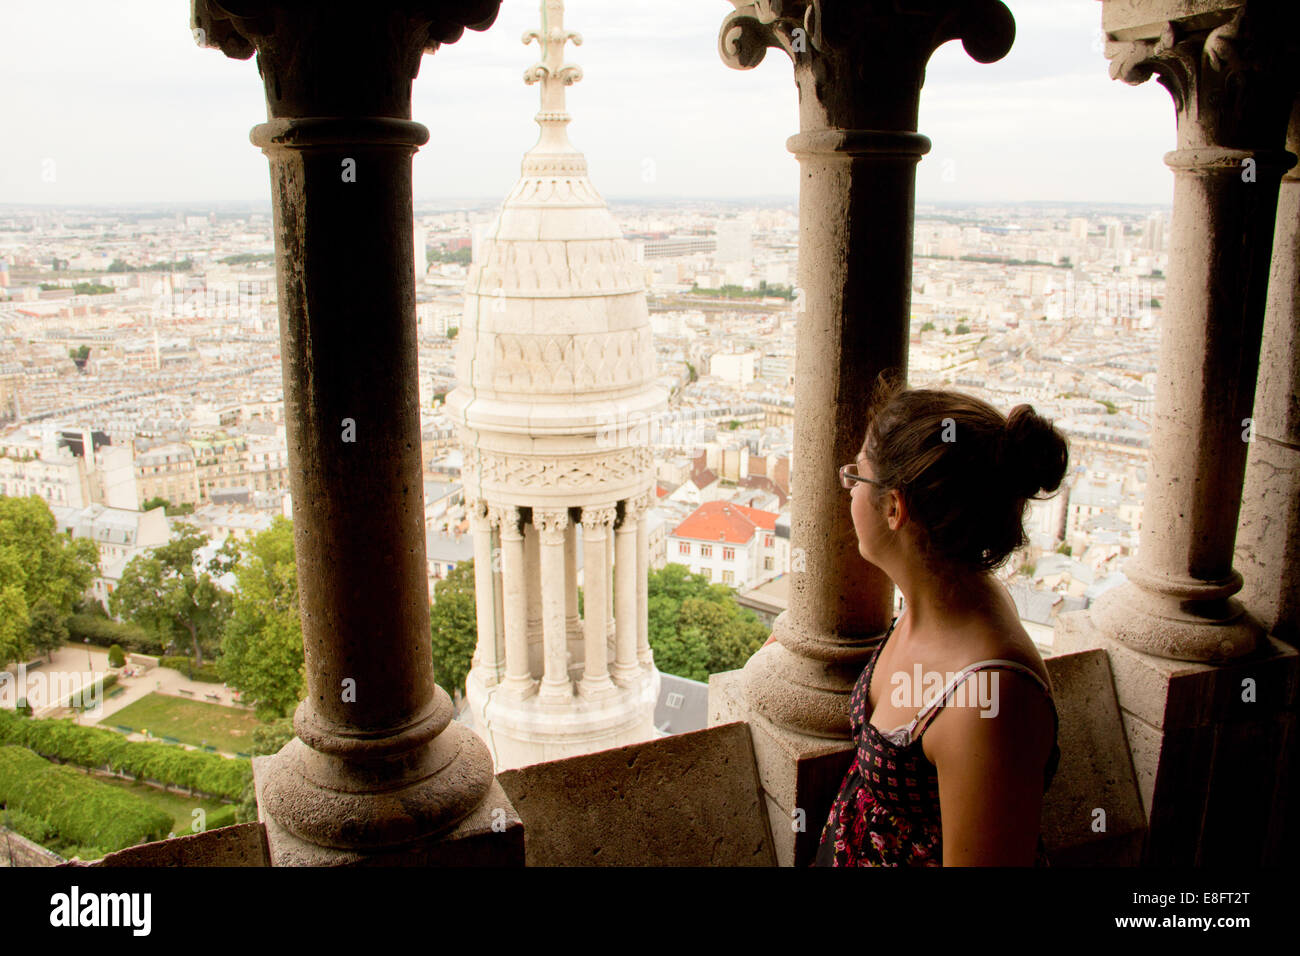 Woman looking out over city - Stock Image